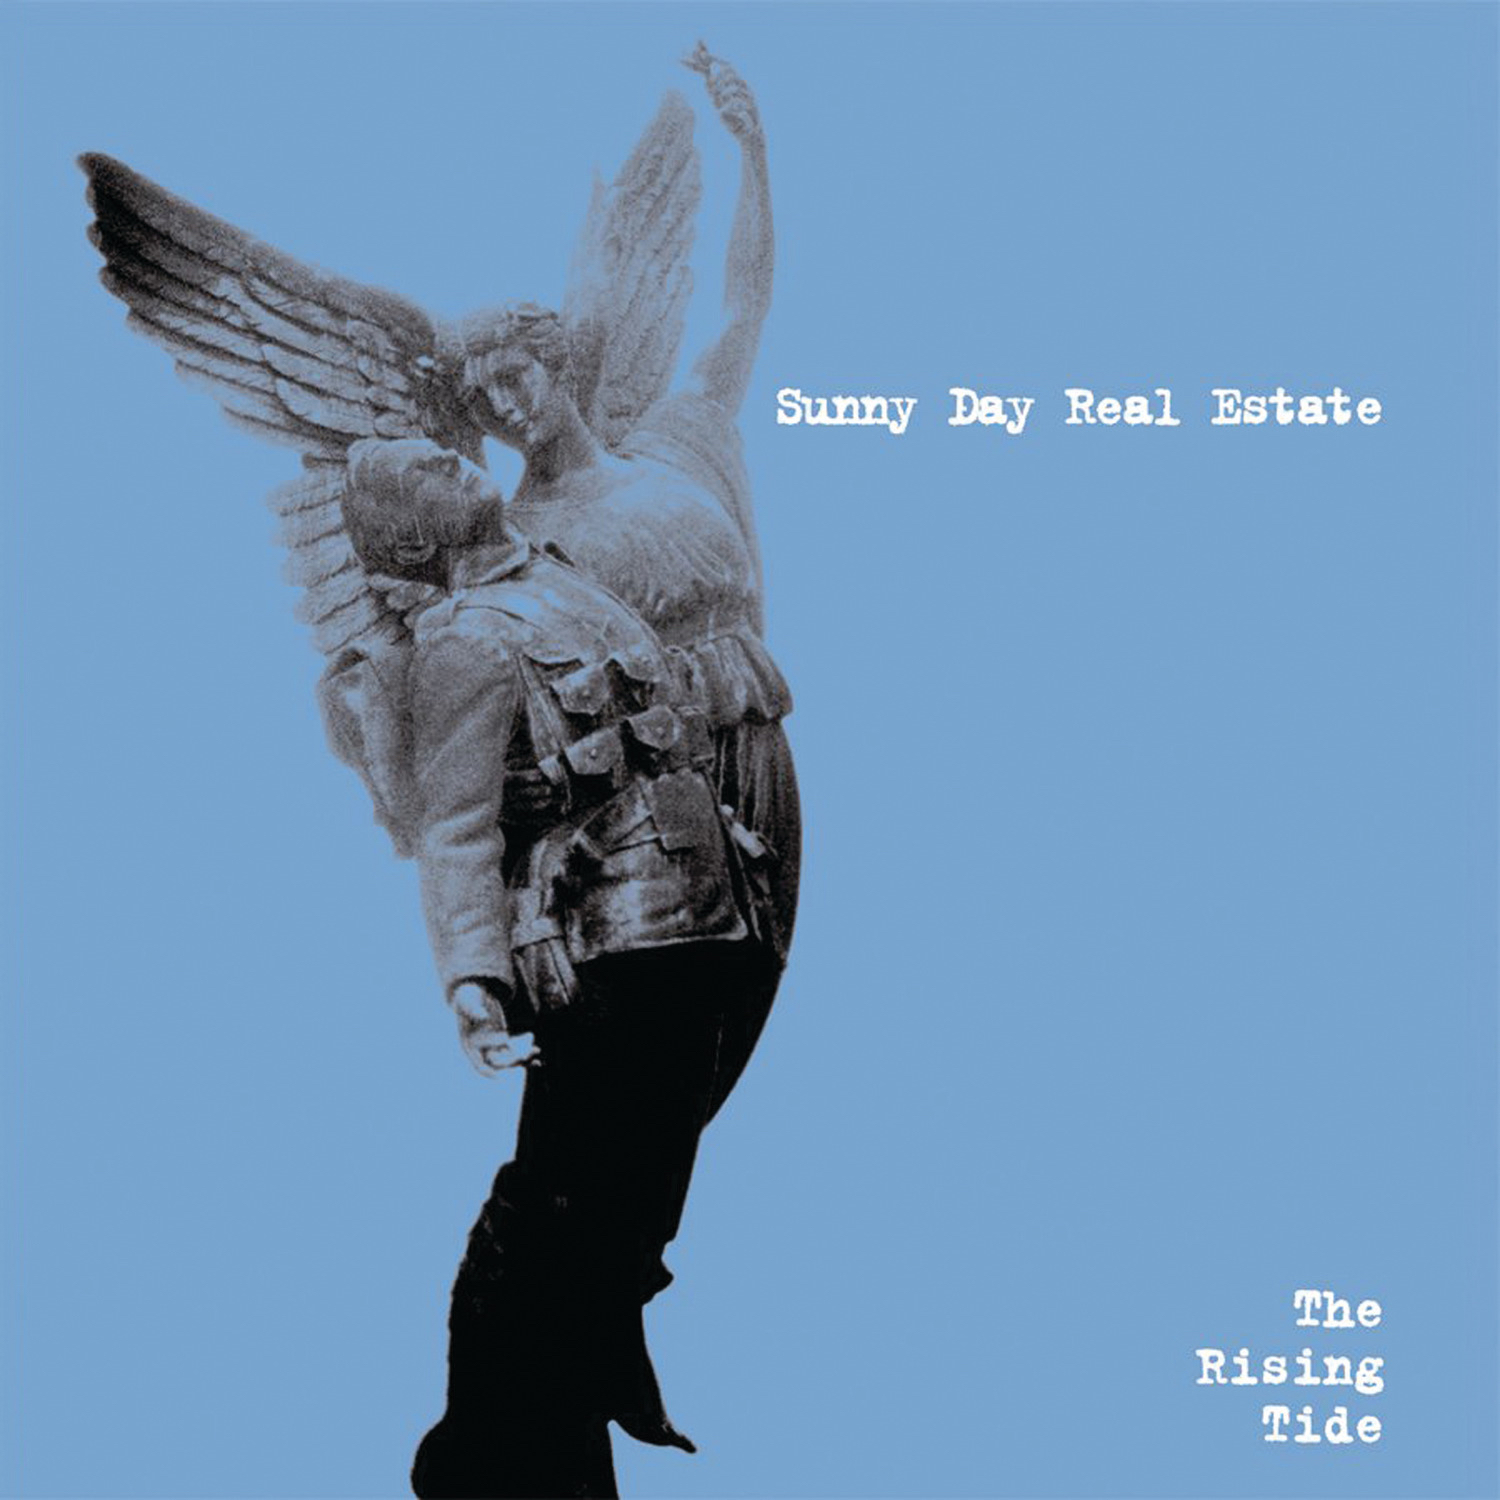 Sunny Day Real Estate - The Rising Tide